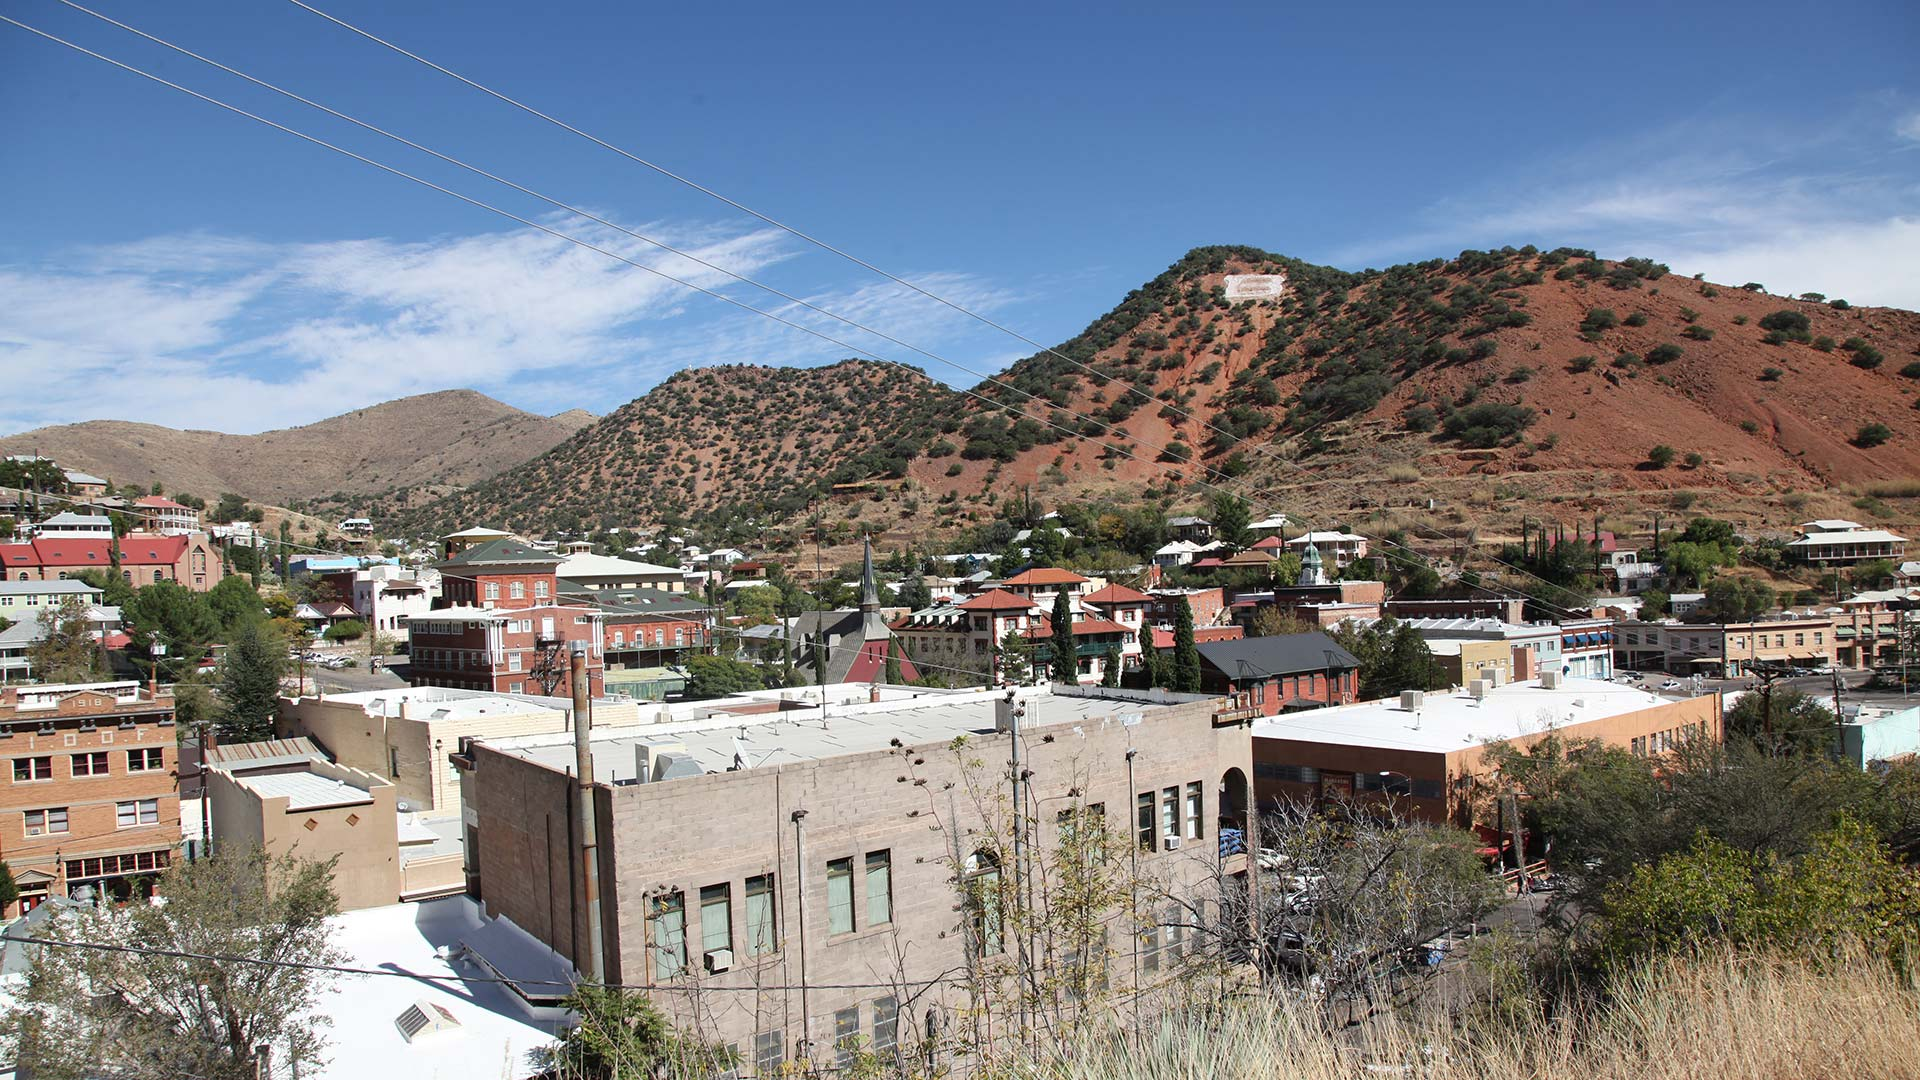 Oldtown Bisbee